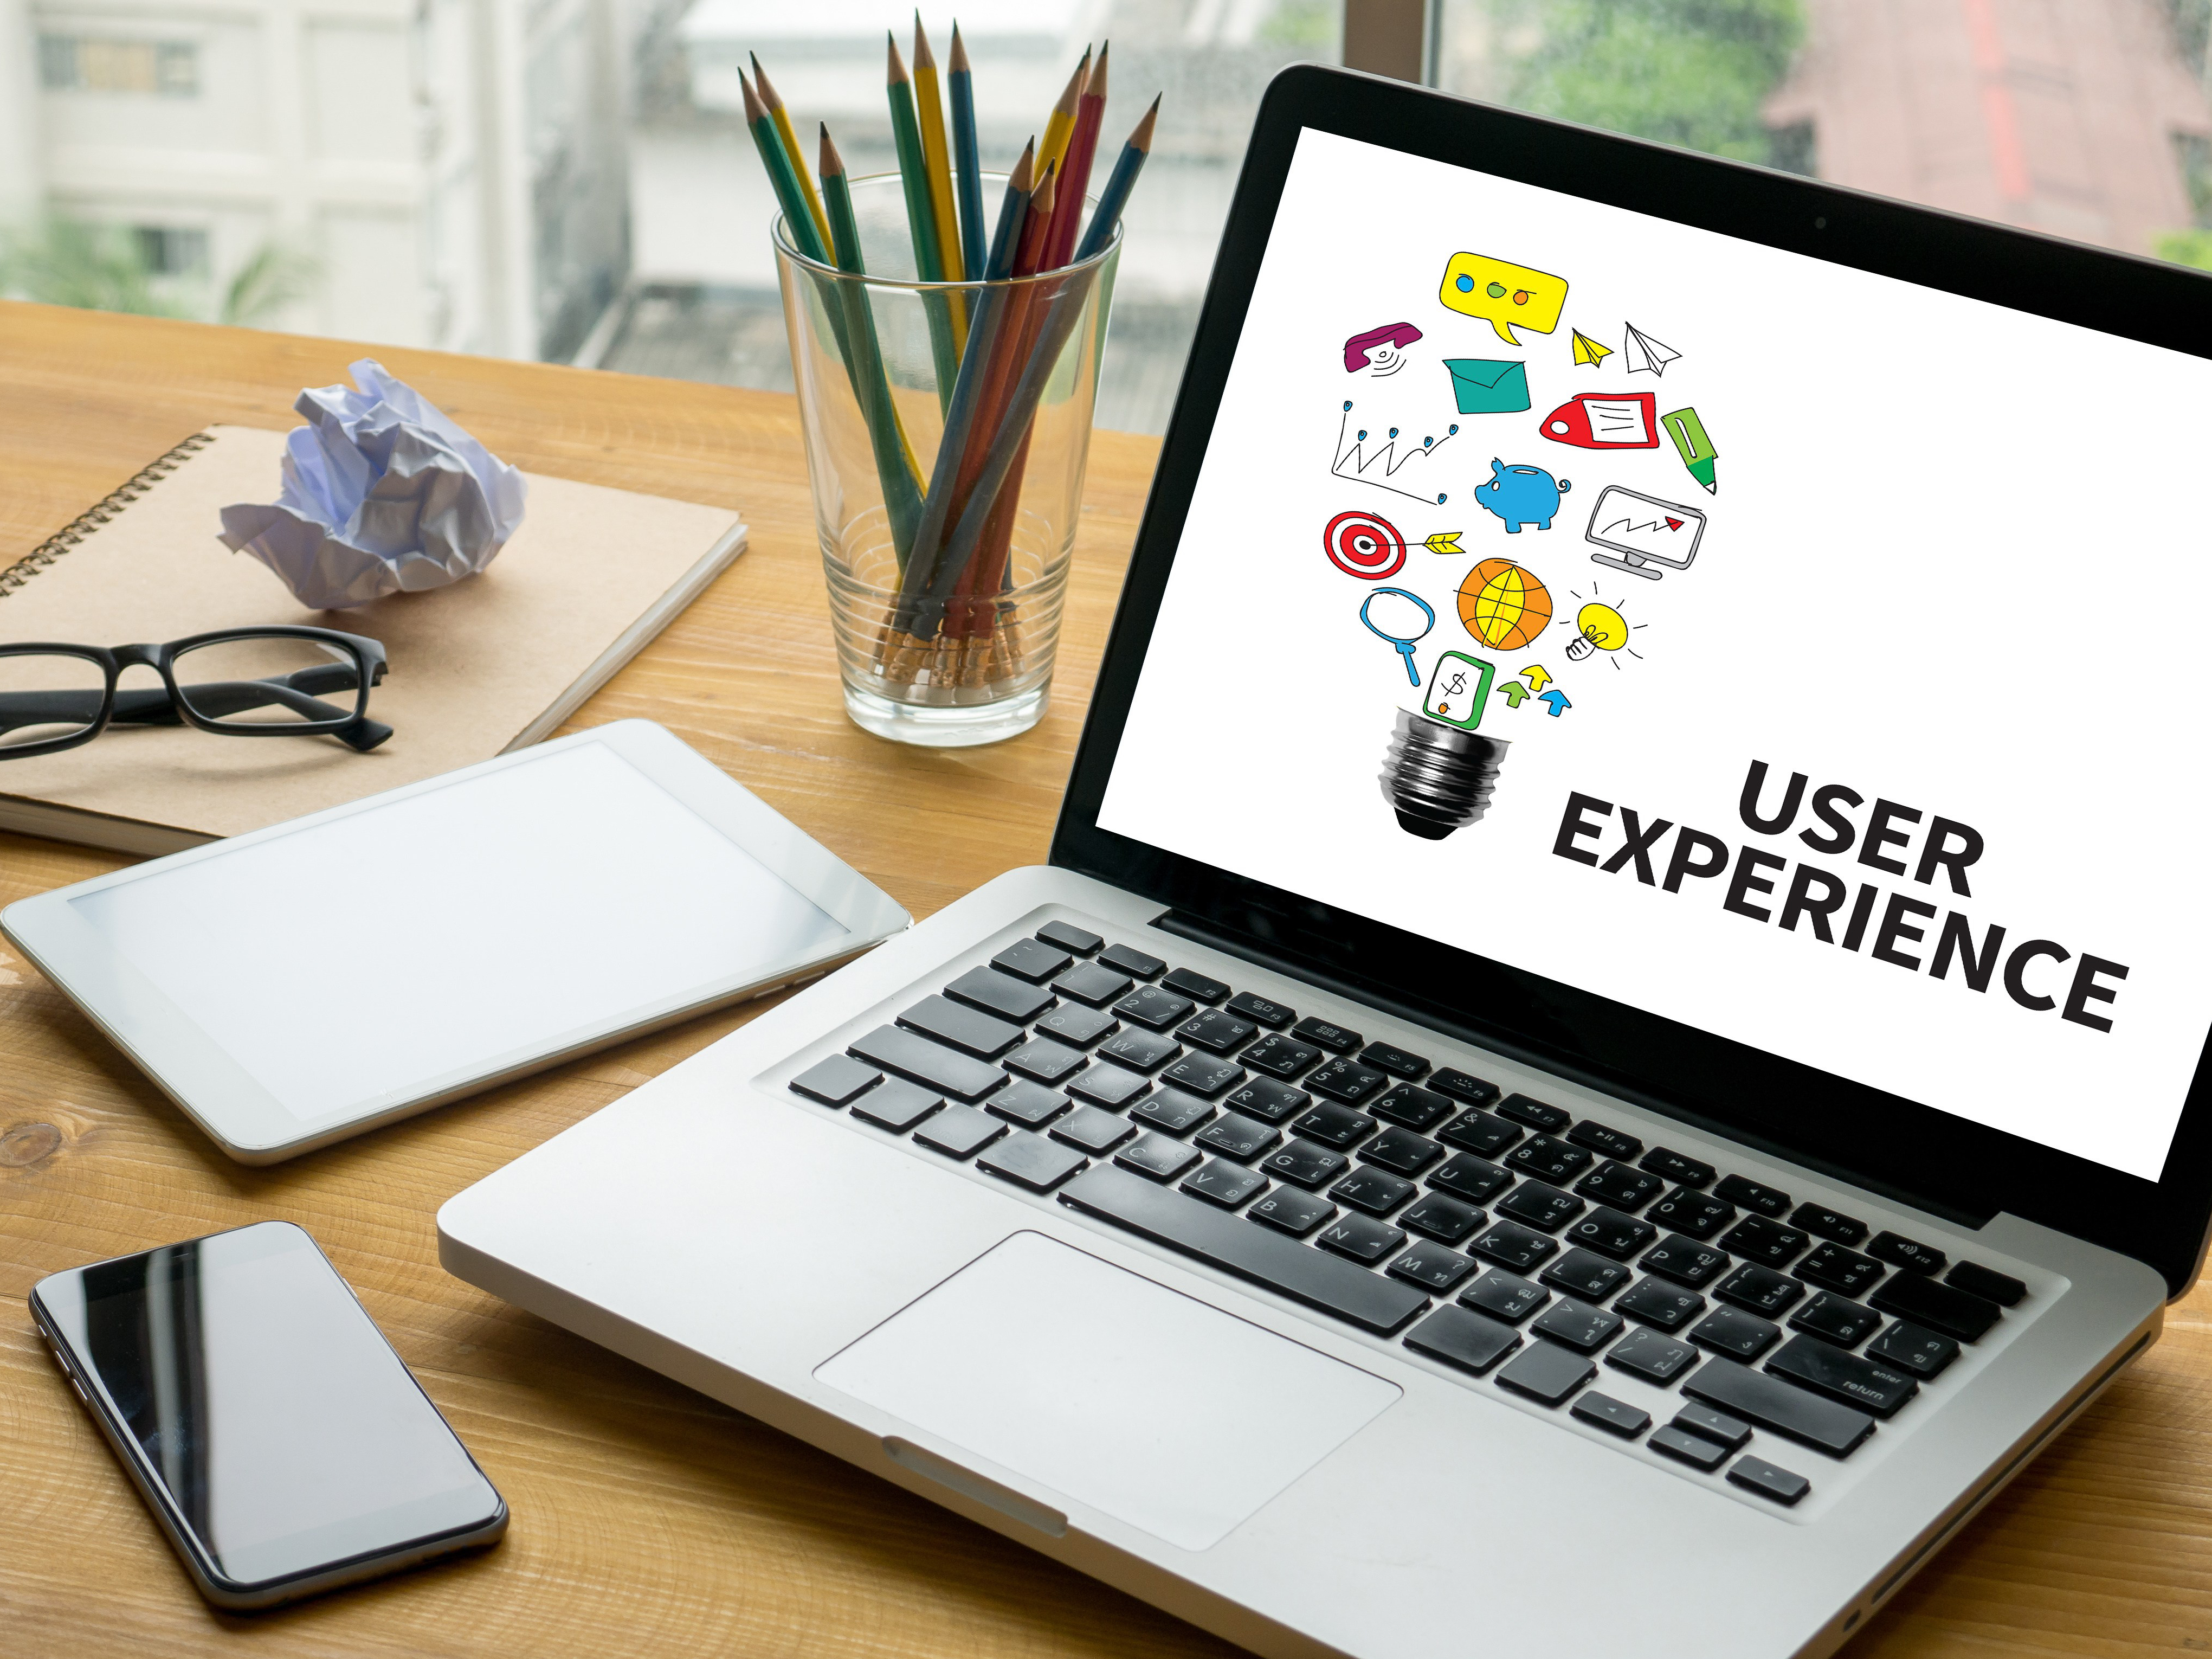 User Experience Matters by Stacy Sherman